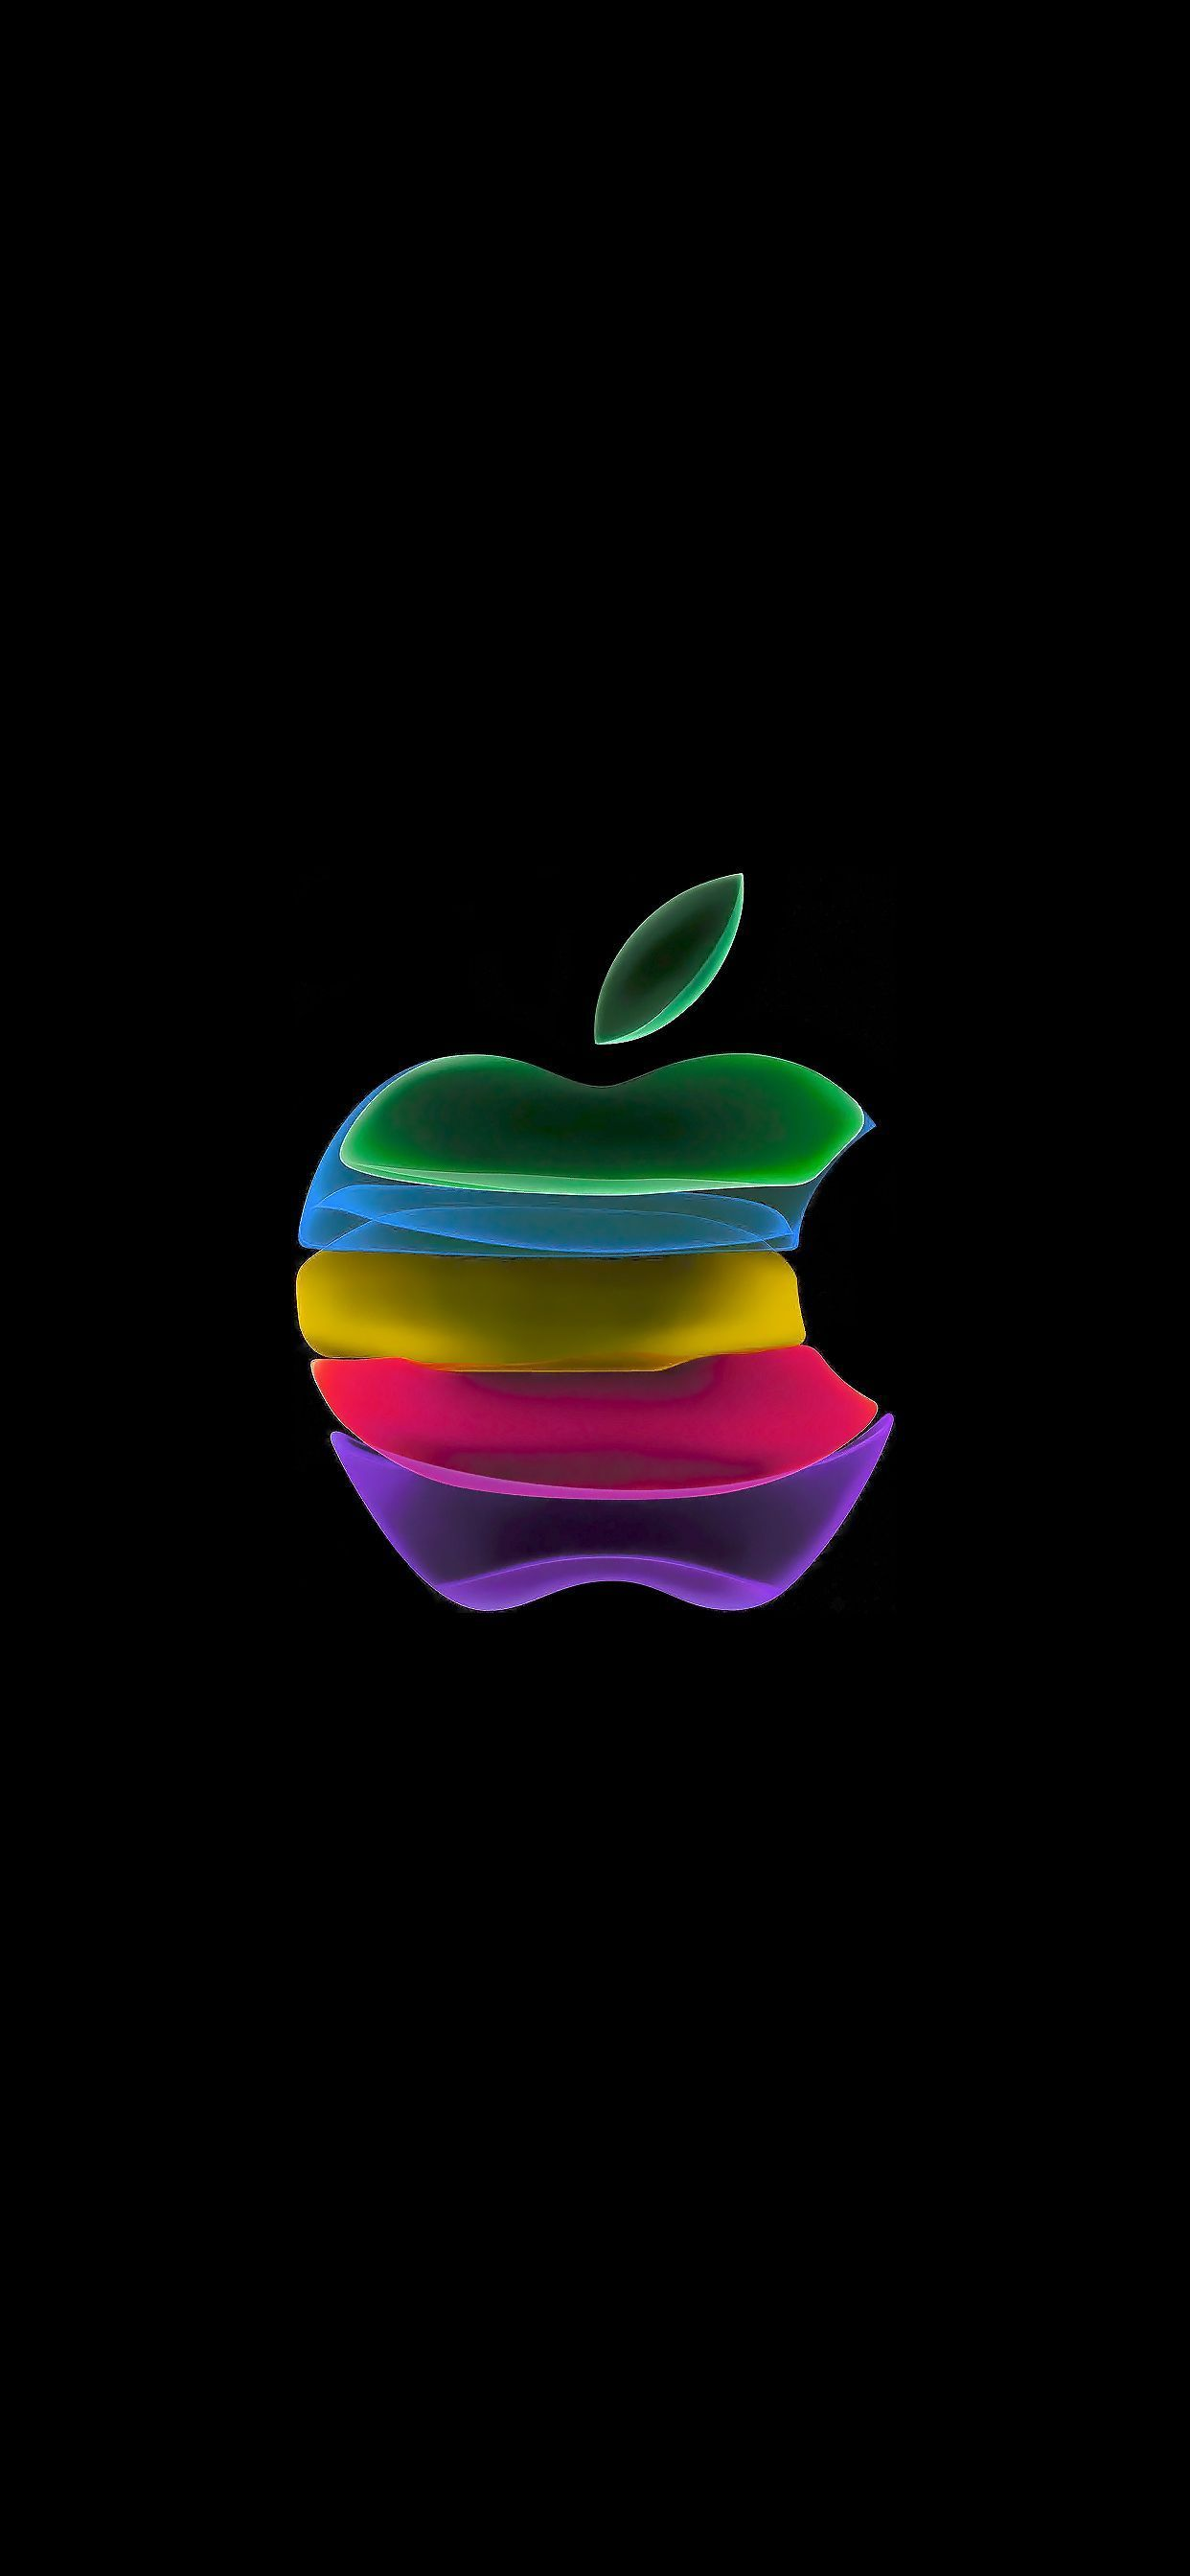 Iphone 11 Pro Max Wallpapers Top Free Iphone 11 Pro Max Backgrounds Wallpaperaccess Apple Logo Wallpaper Iphone Iphone 9 Wallpaper 4k Wallpaper Iphone